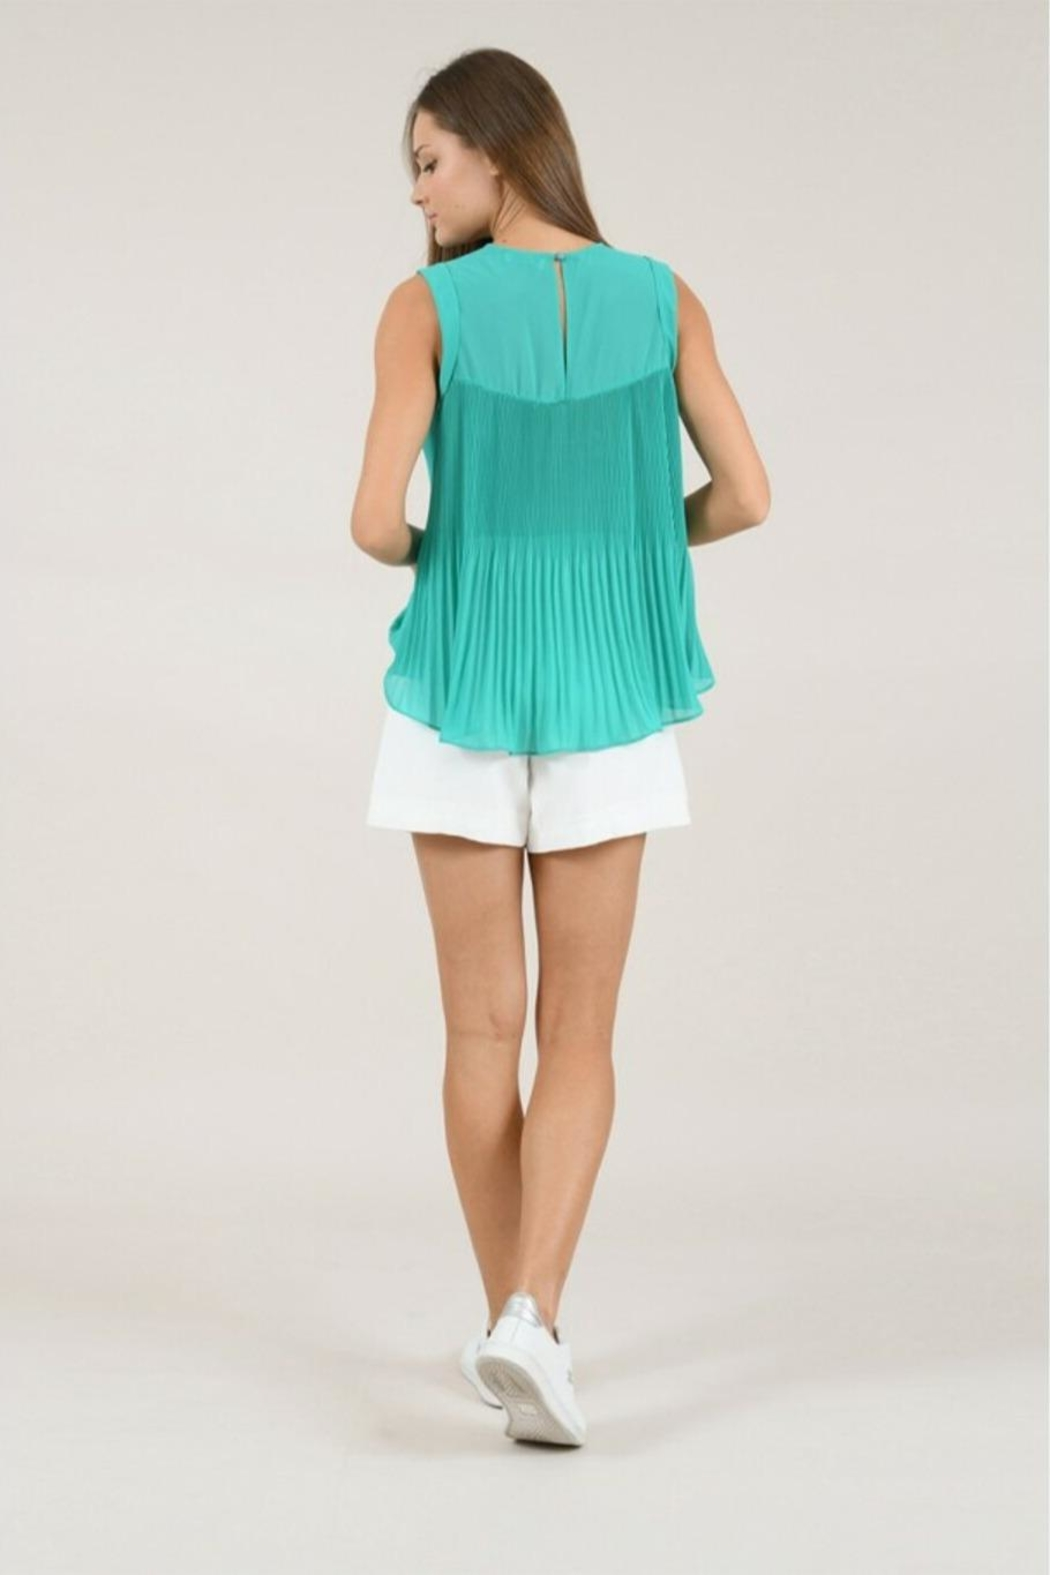 Molly Bracken Pleated Flared Top - Side Cropped Image